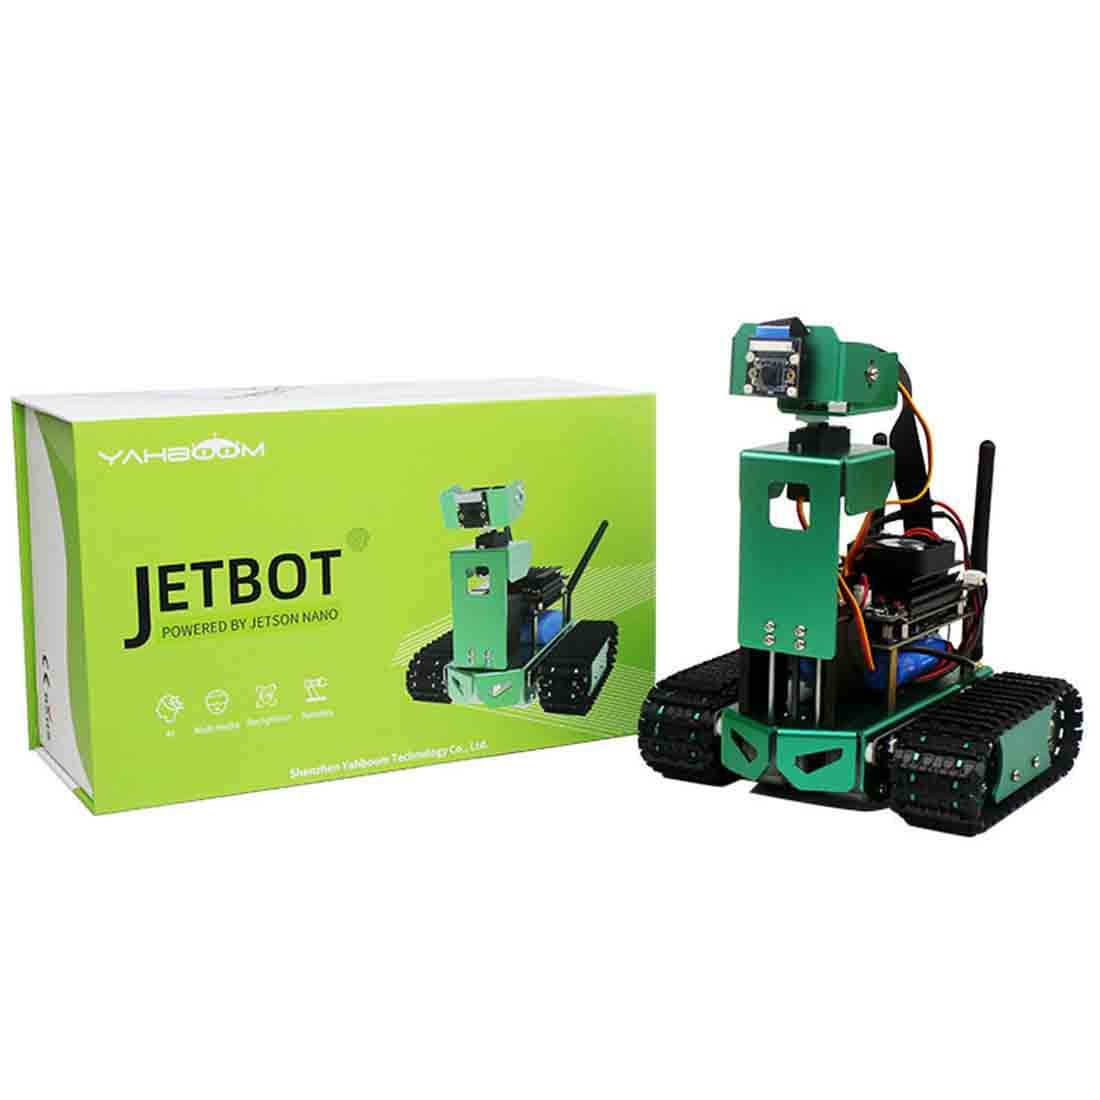 New Artificial Intelligence Car DIY 3DOF/2DOF Robot Car Kit With Development Board For Jetson Nano (Adjustable/Fixed Height)